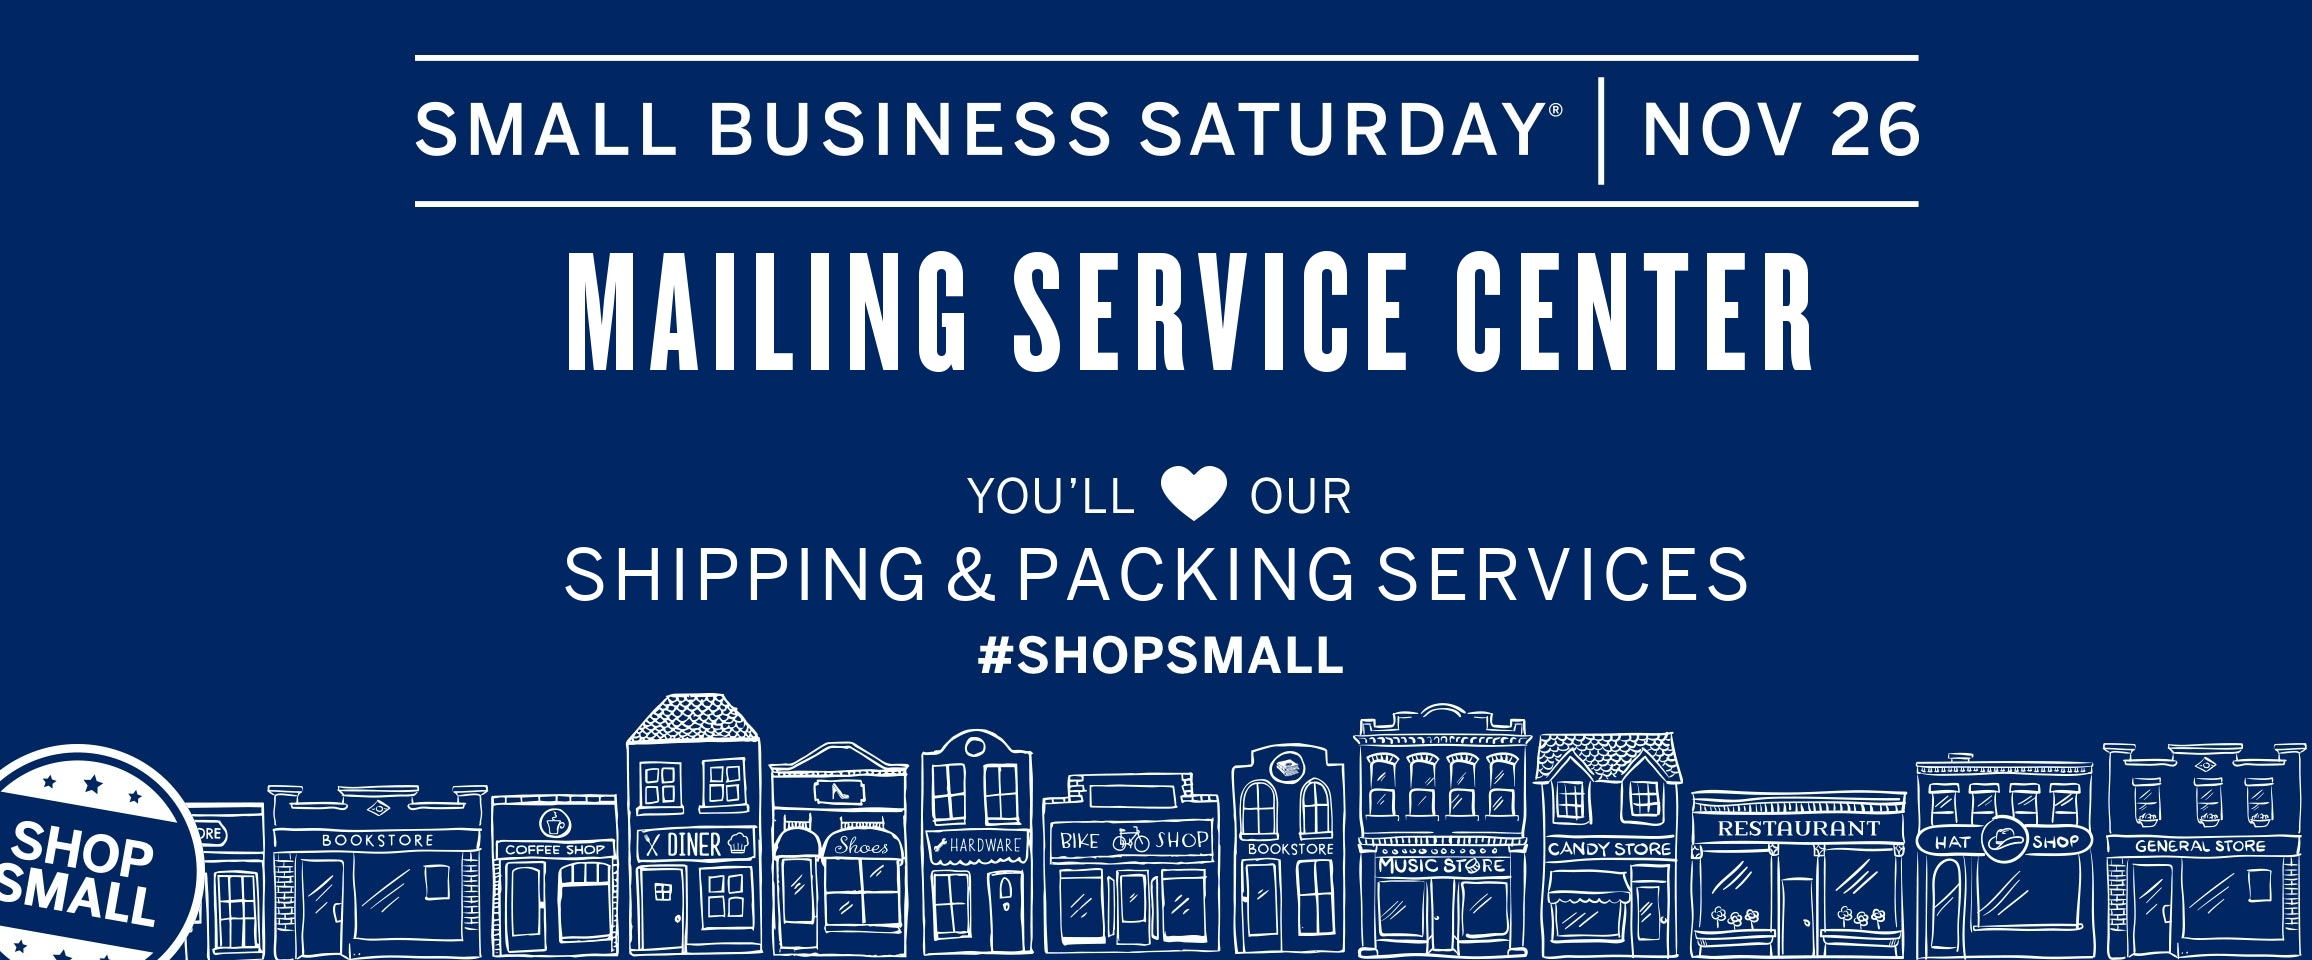 Mailing Service Center Celebrates Small Business Saturday 11/26/16